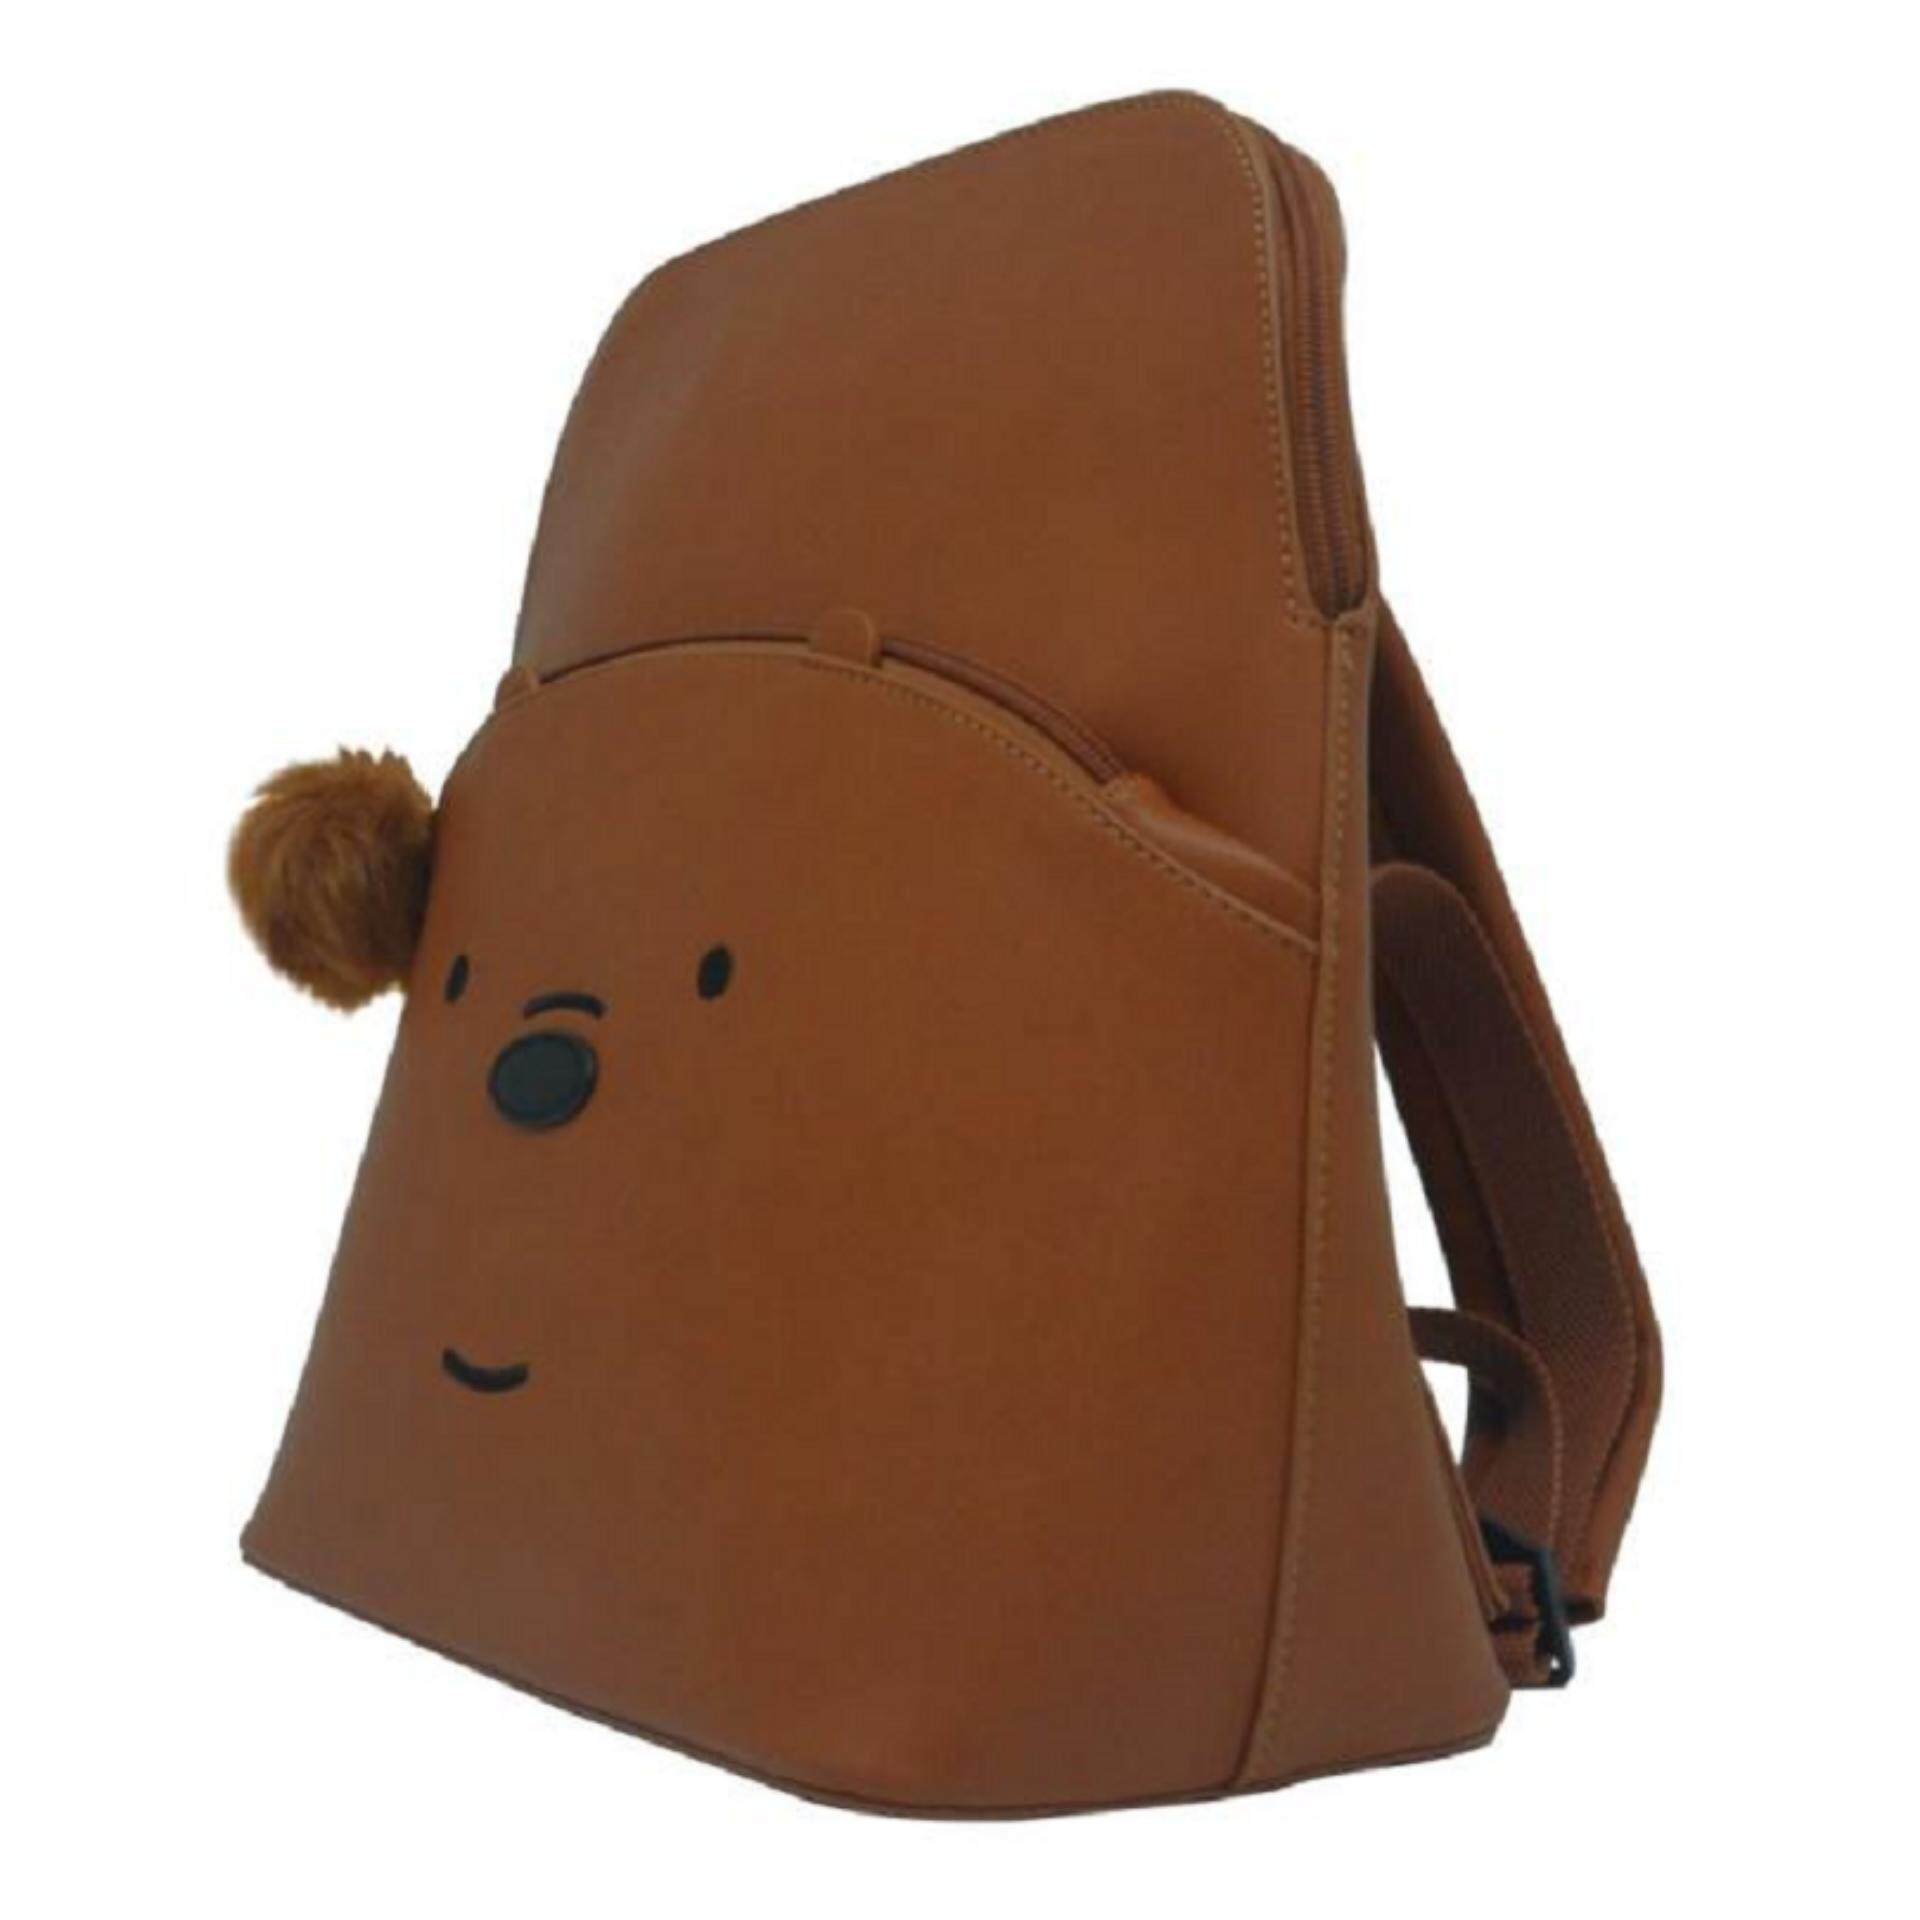 We Bare Bears Backpack School Bag 12.5 Inches - Grizz